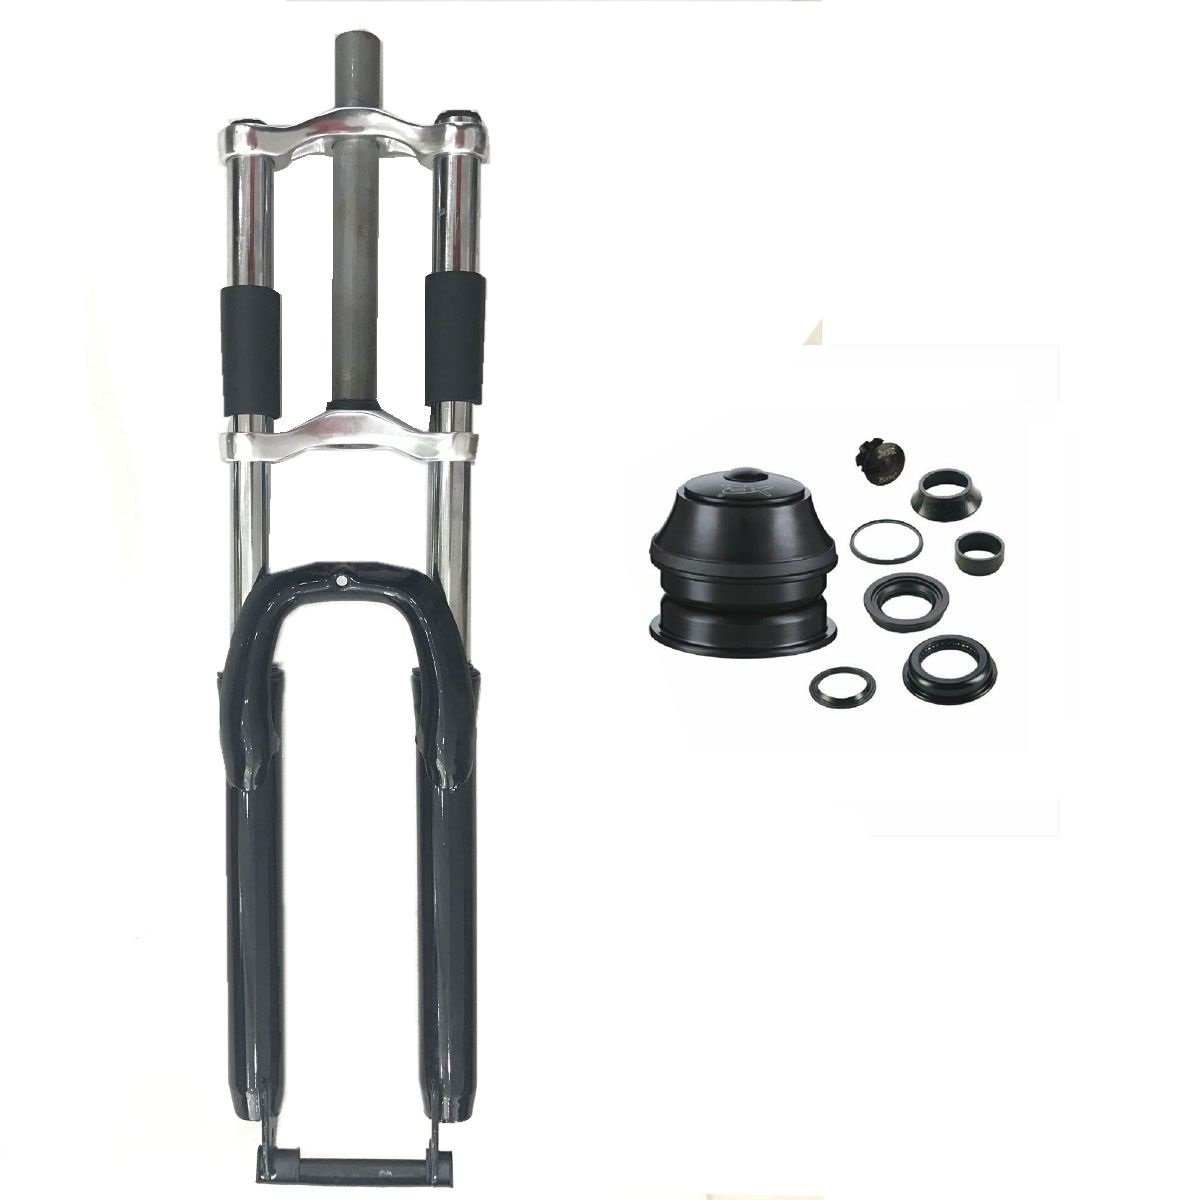 CDHPOWER Bicycle Black Fork 26'' and 1 1/8'' Headset Combo- Triple Tree Suspension Fork w/Double Shoulder-Gas Motorized Bike